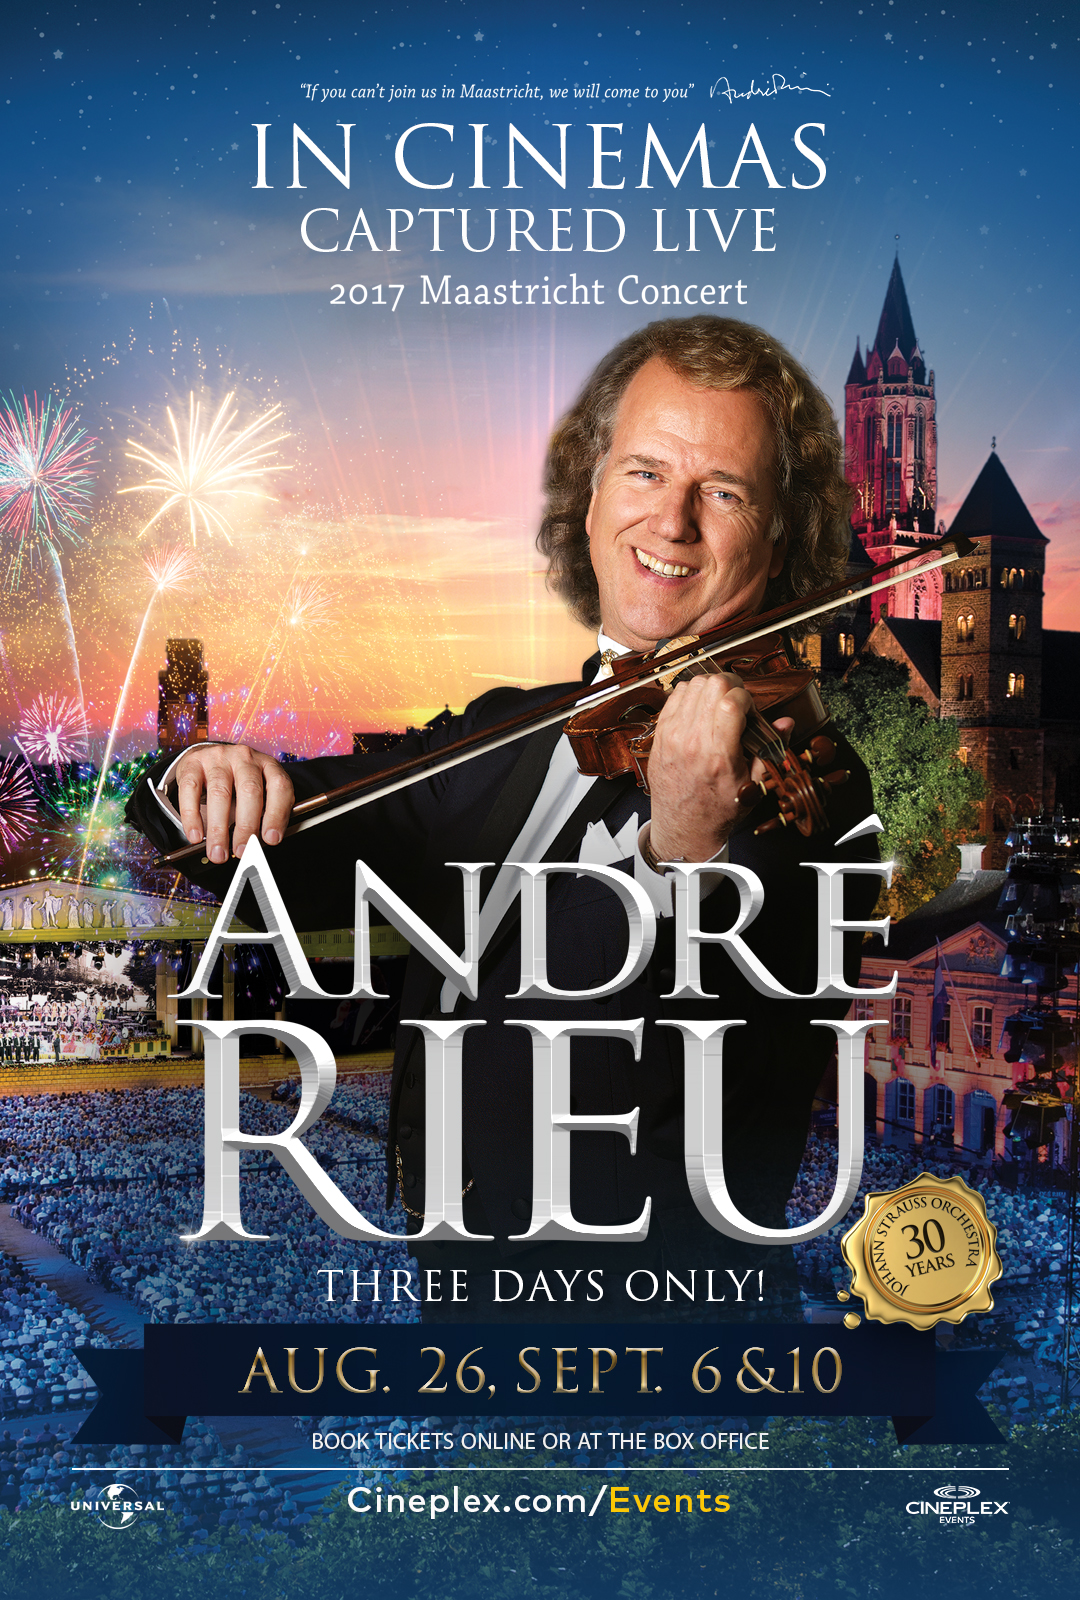 andre-rieus-2017-maastricht-concert-english-and-dutch-west